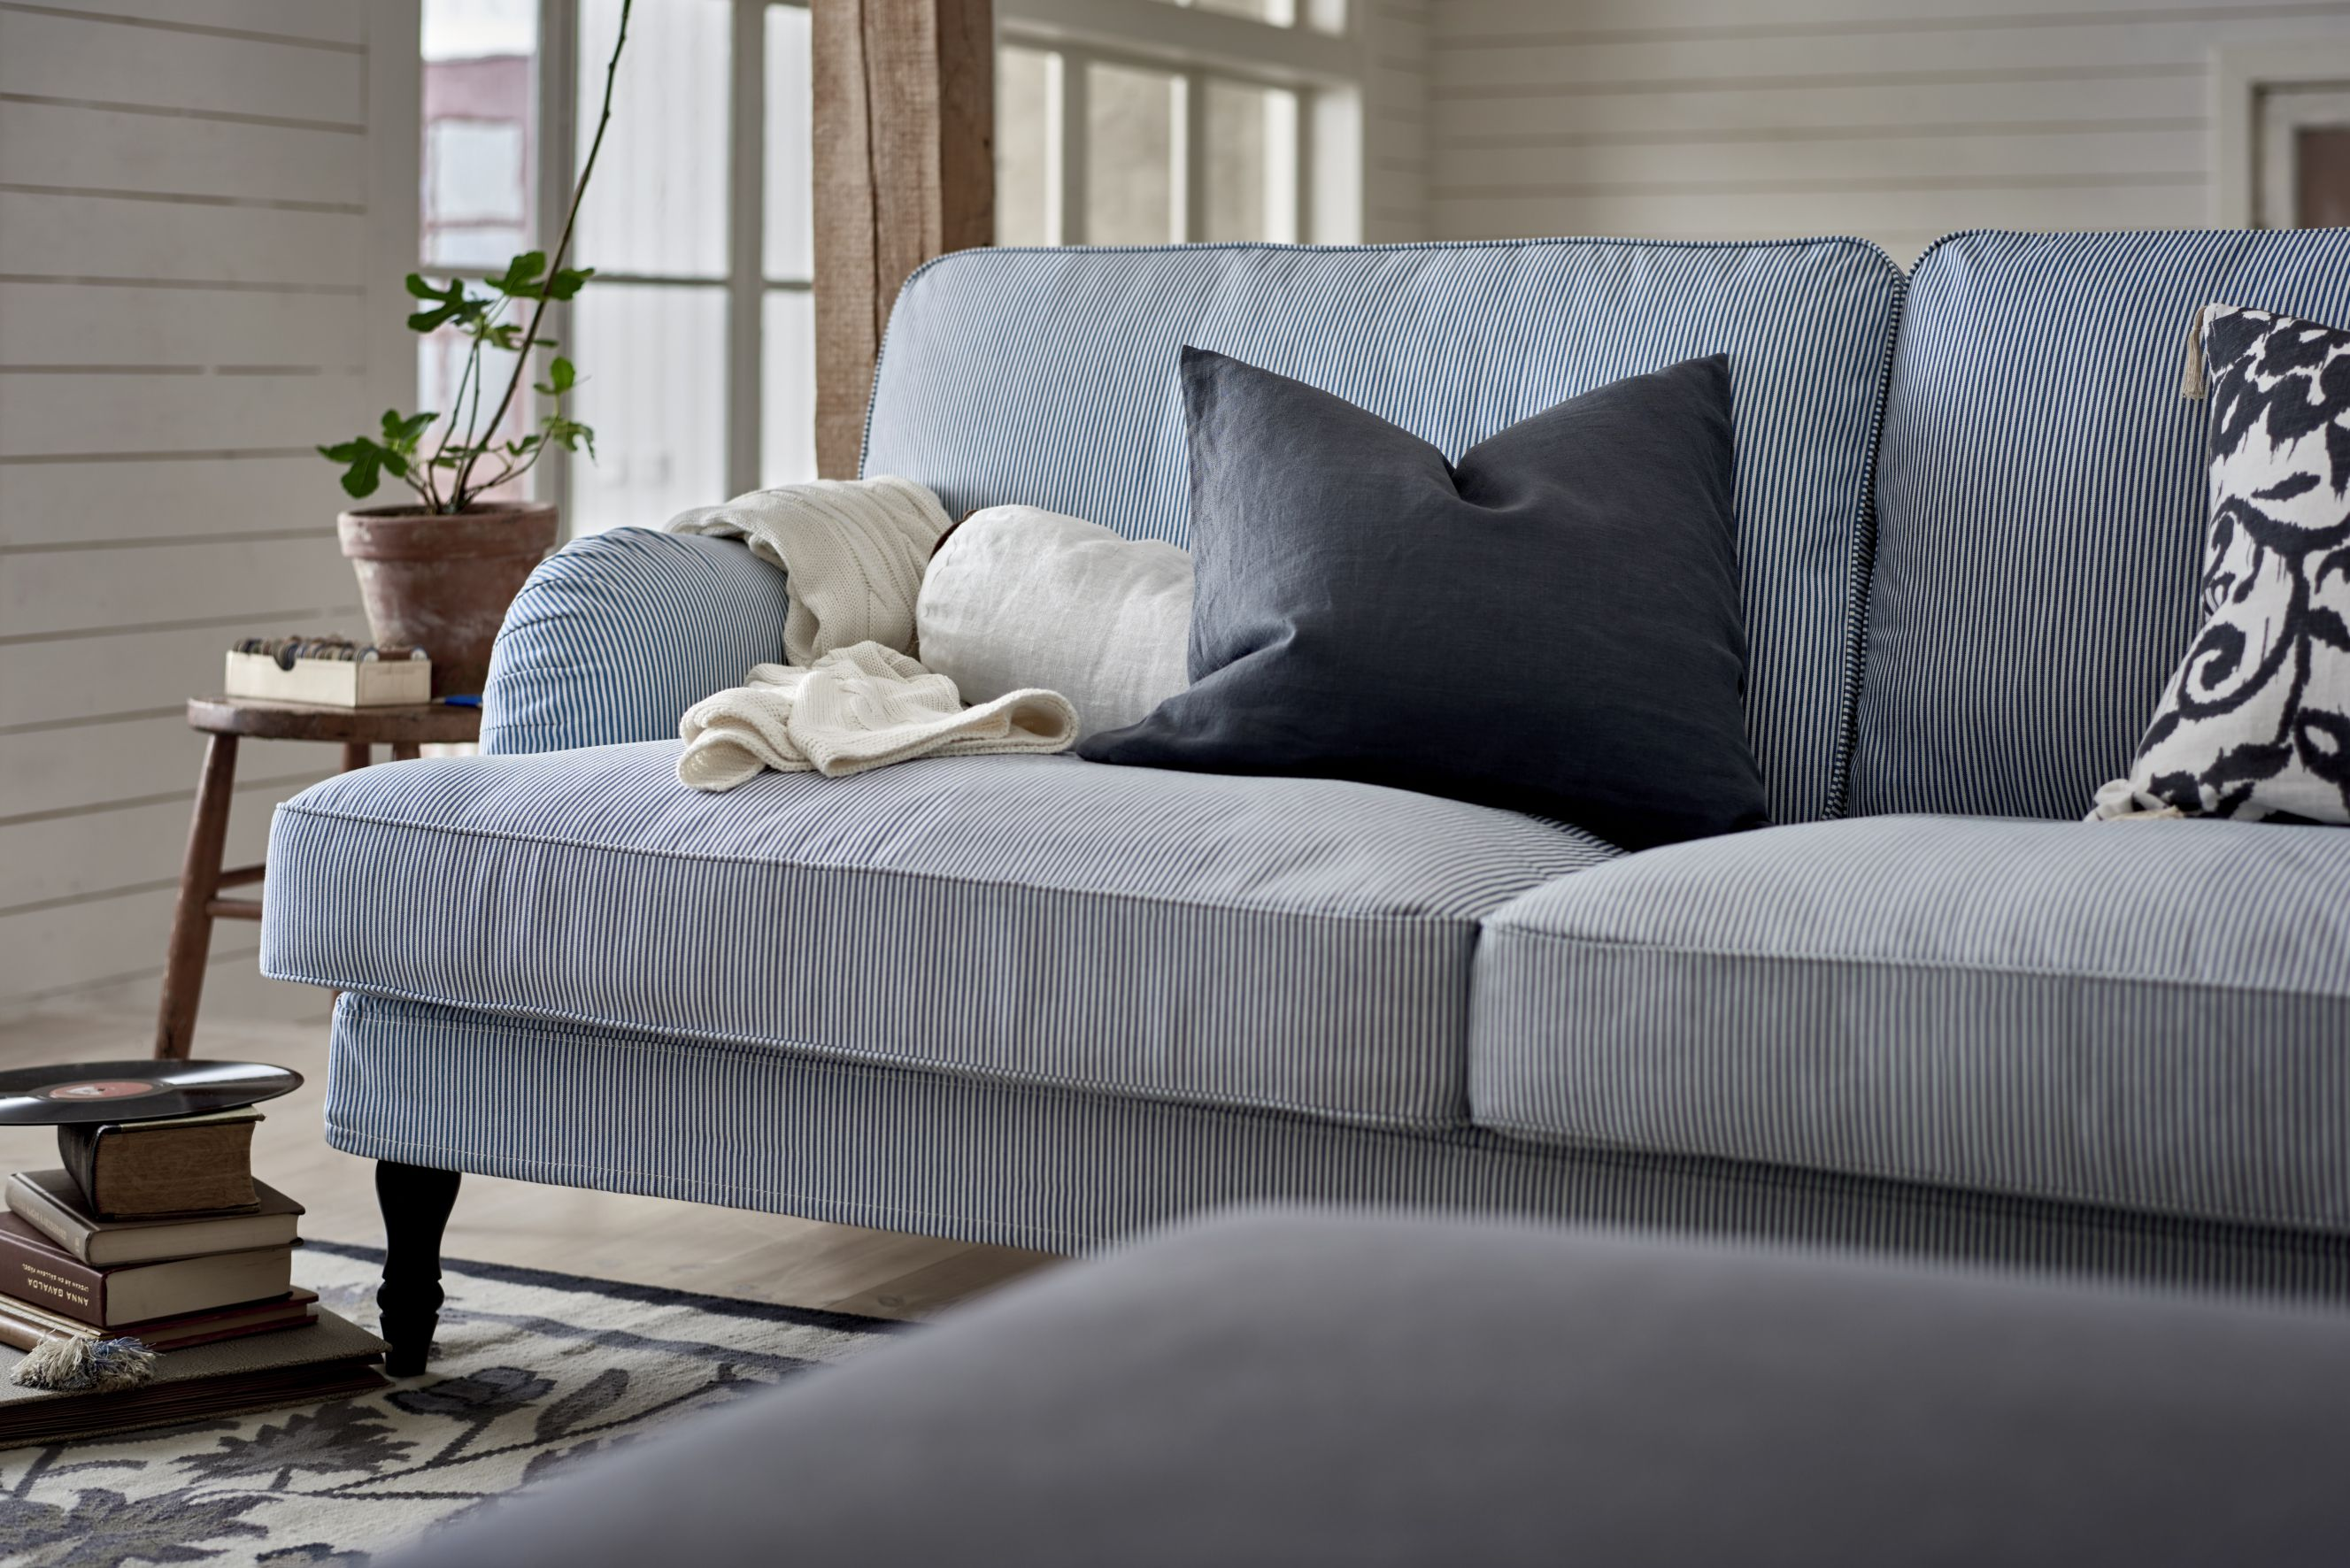 Dahlia 3 Seat Leather Sofa 5 Rules To Consider Before You Buy A Sofa Choosing A Sofa